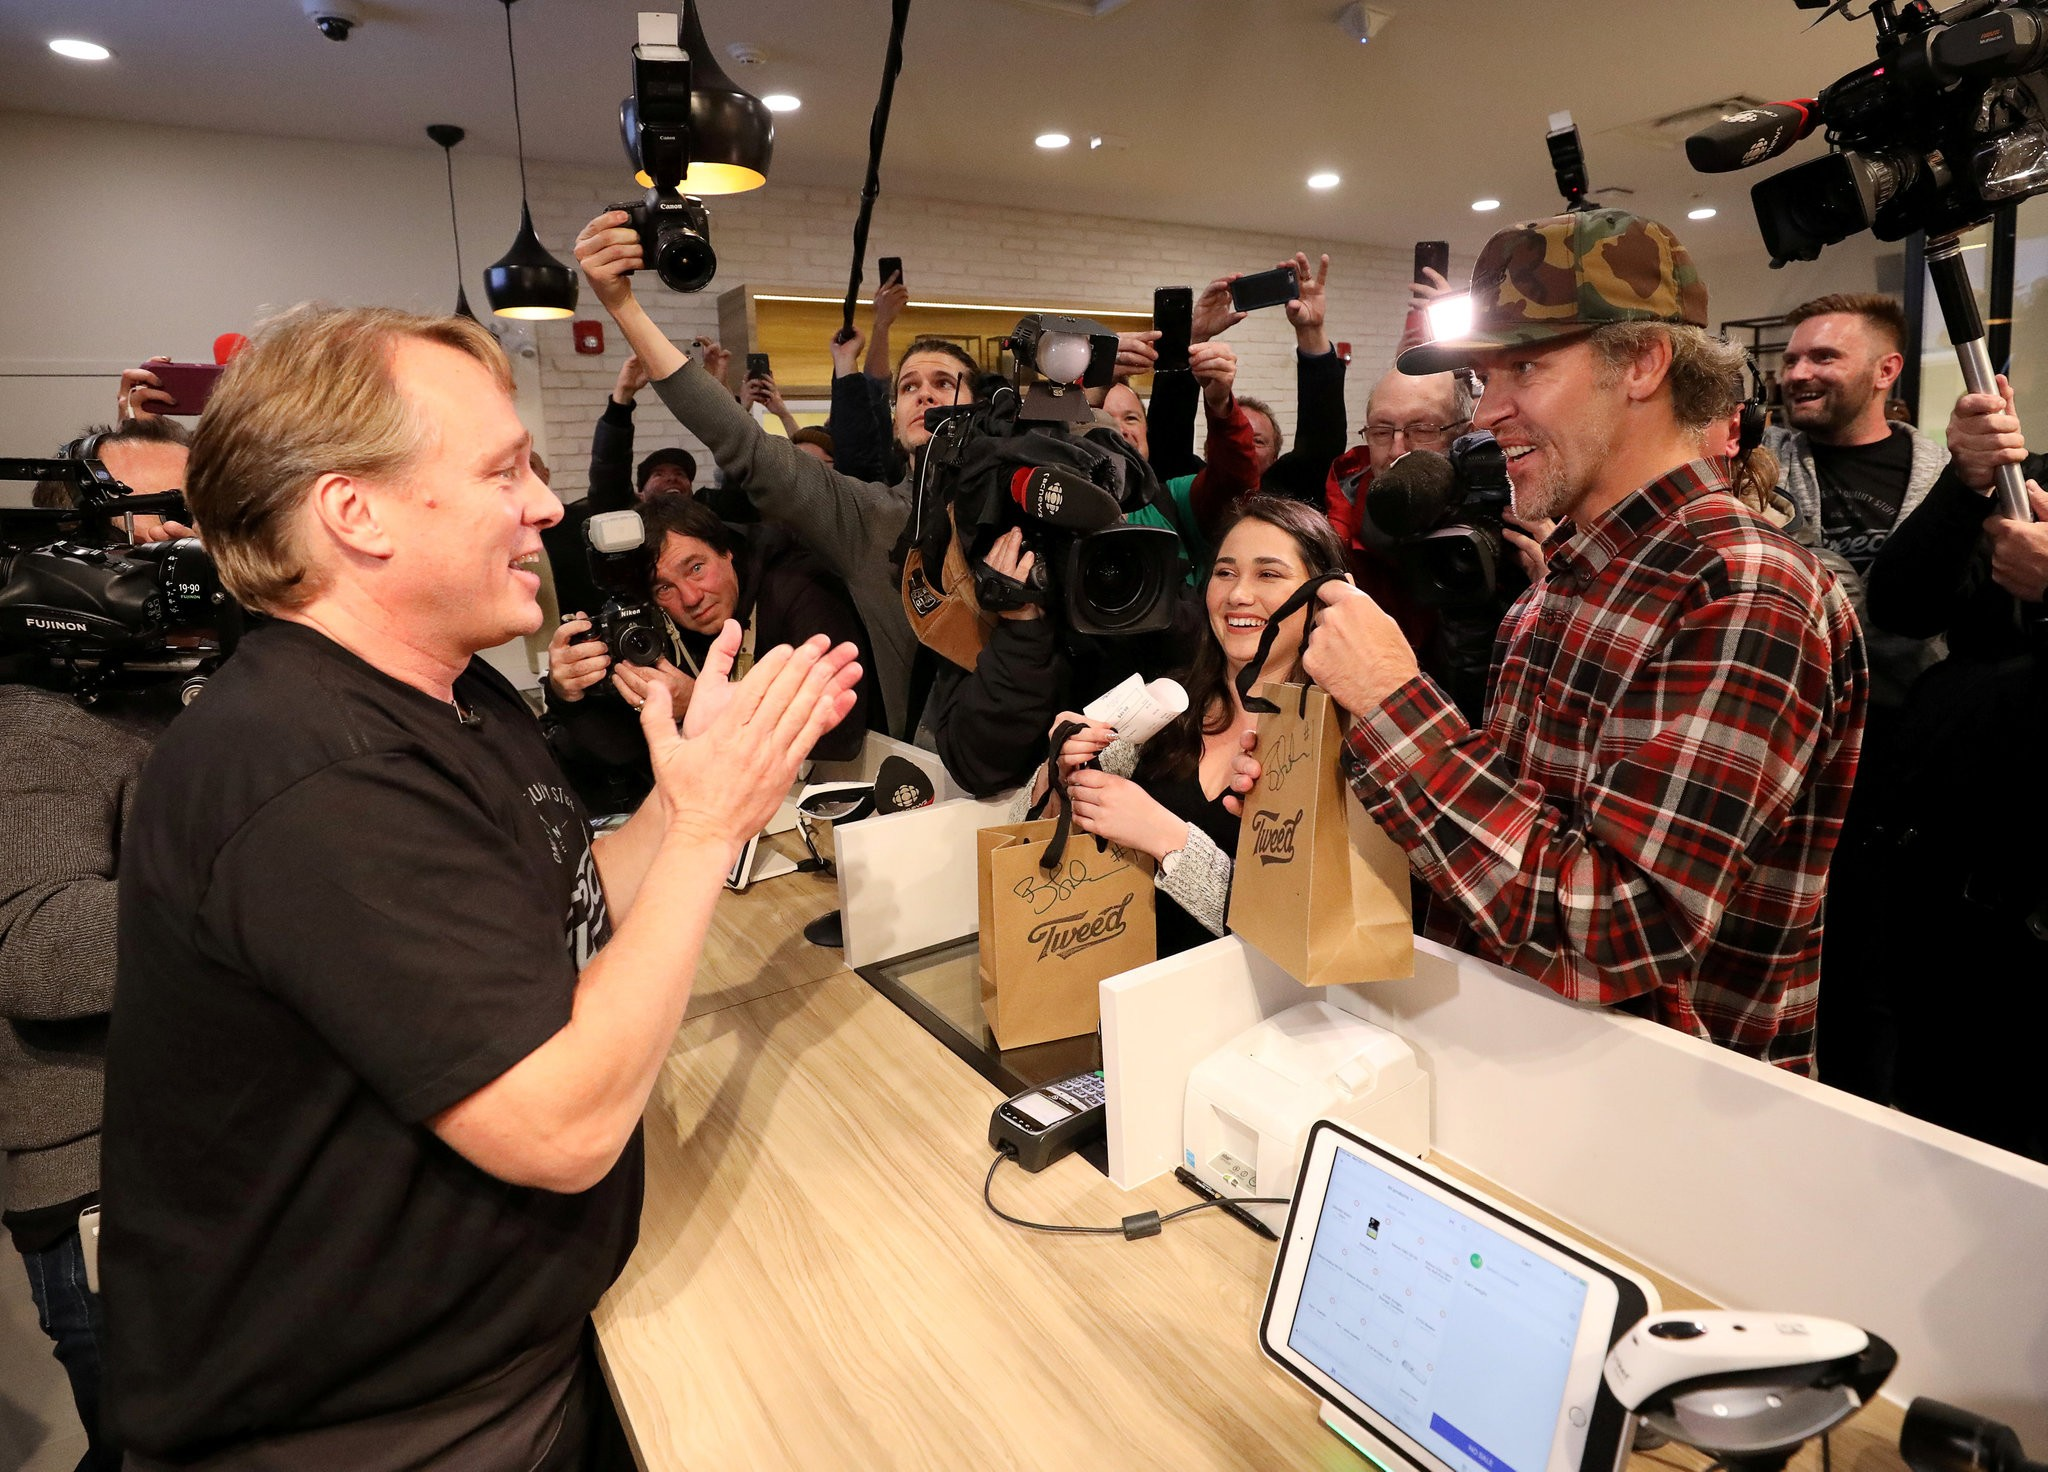 The first legal cannabis sale at Tweed, a retail store in St. John's. Canada is only the second country in the world, after Uruguay, to legalize cannabis. Credit: Chris Wattie/Reuters